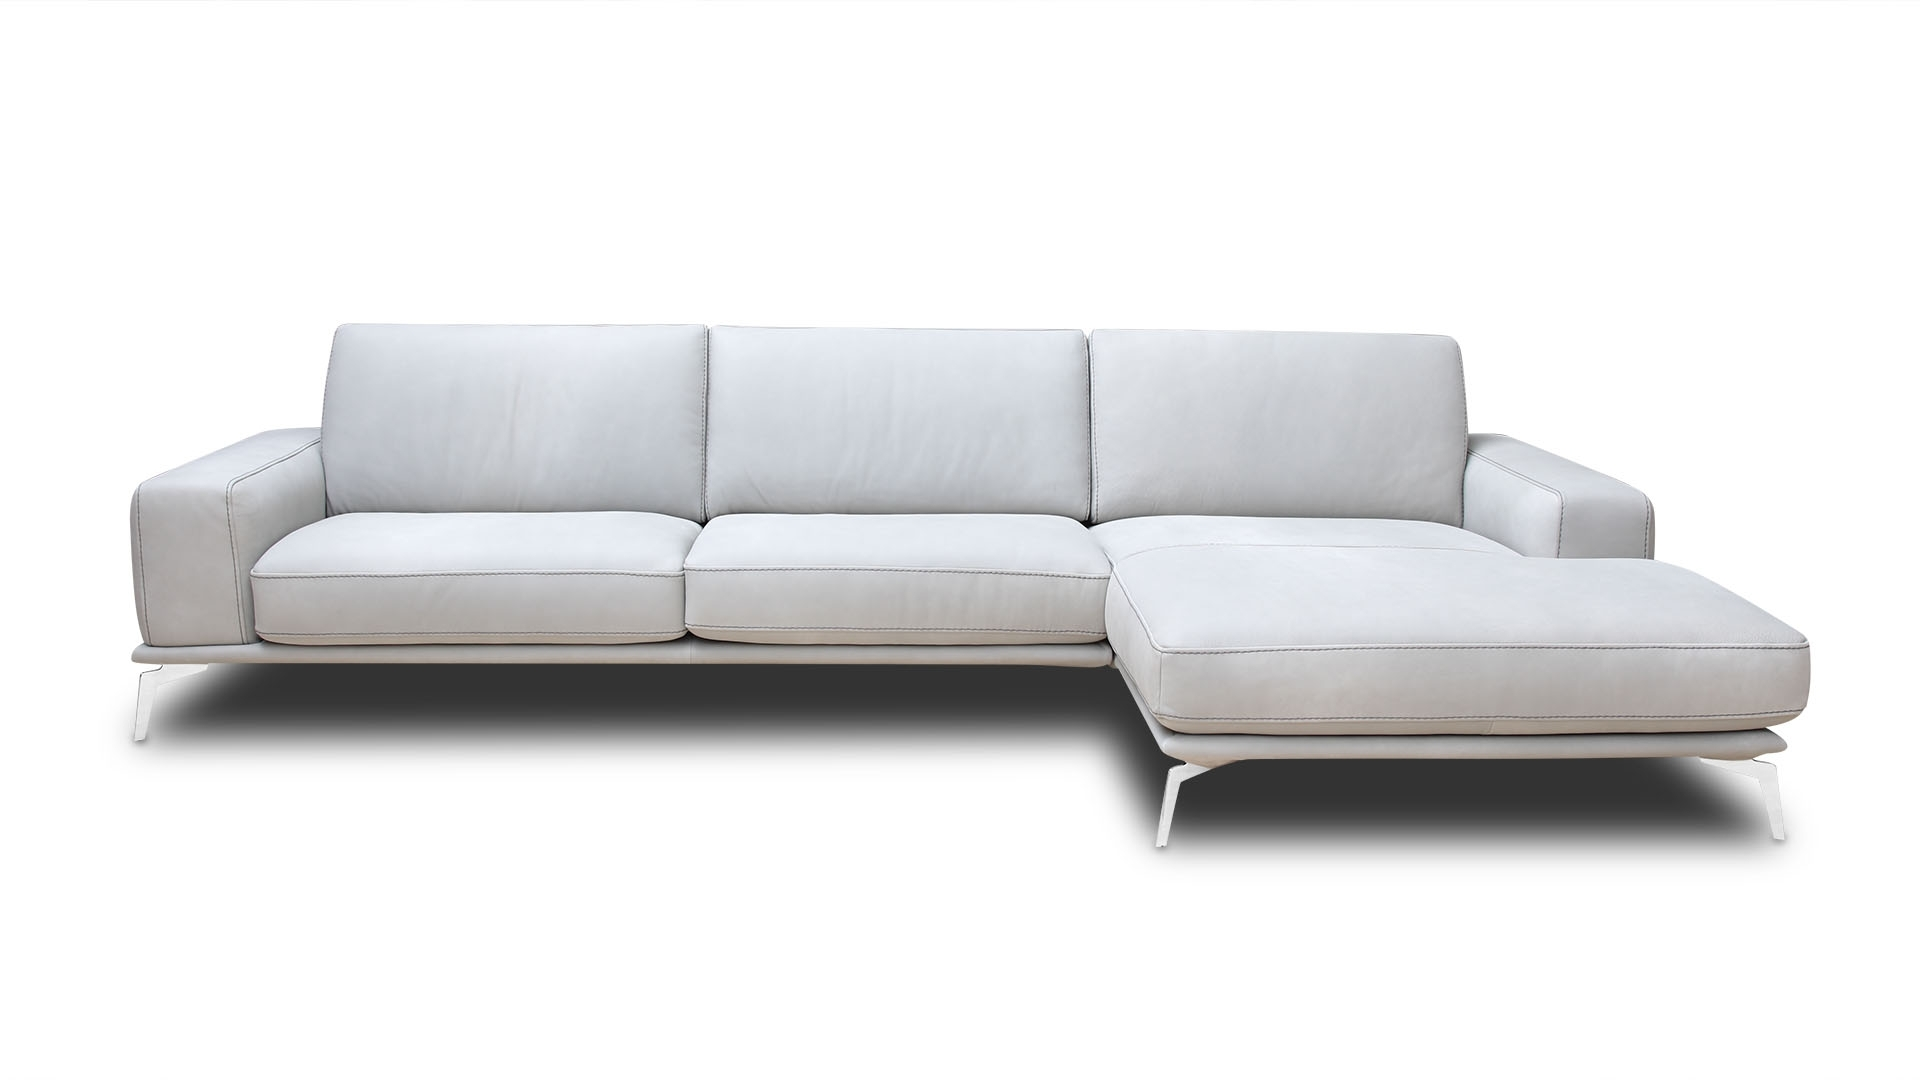 Sofas & Sectionals – Braccisofas within Glamour Ii 3 Piece Sectionals (Image 28 of 30)